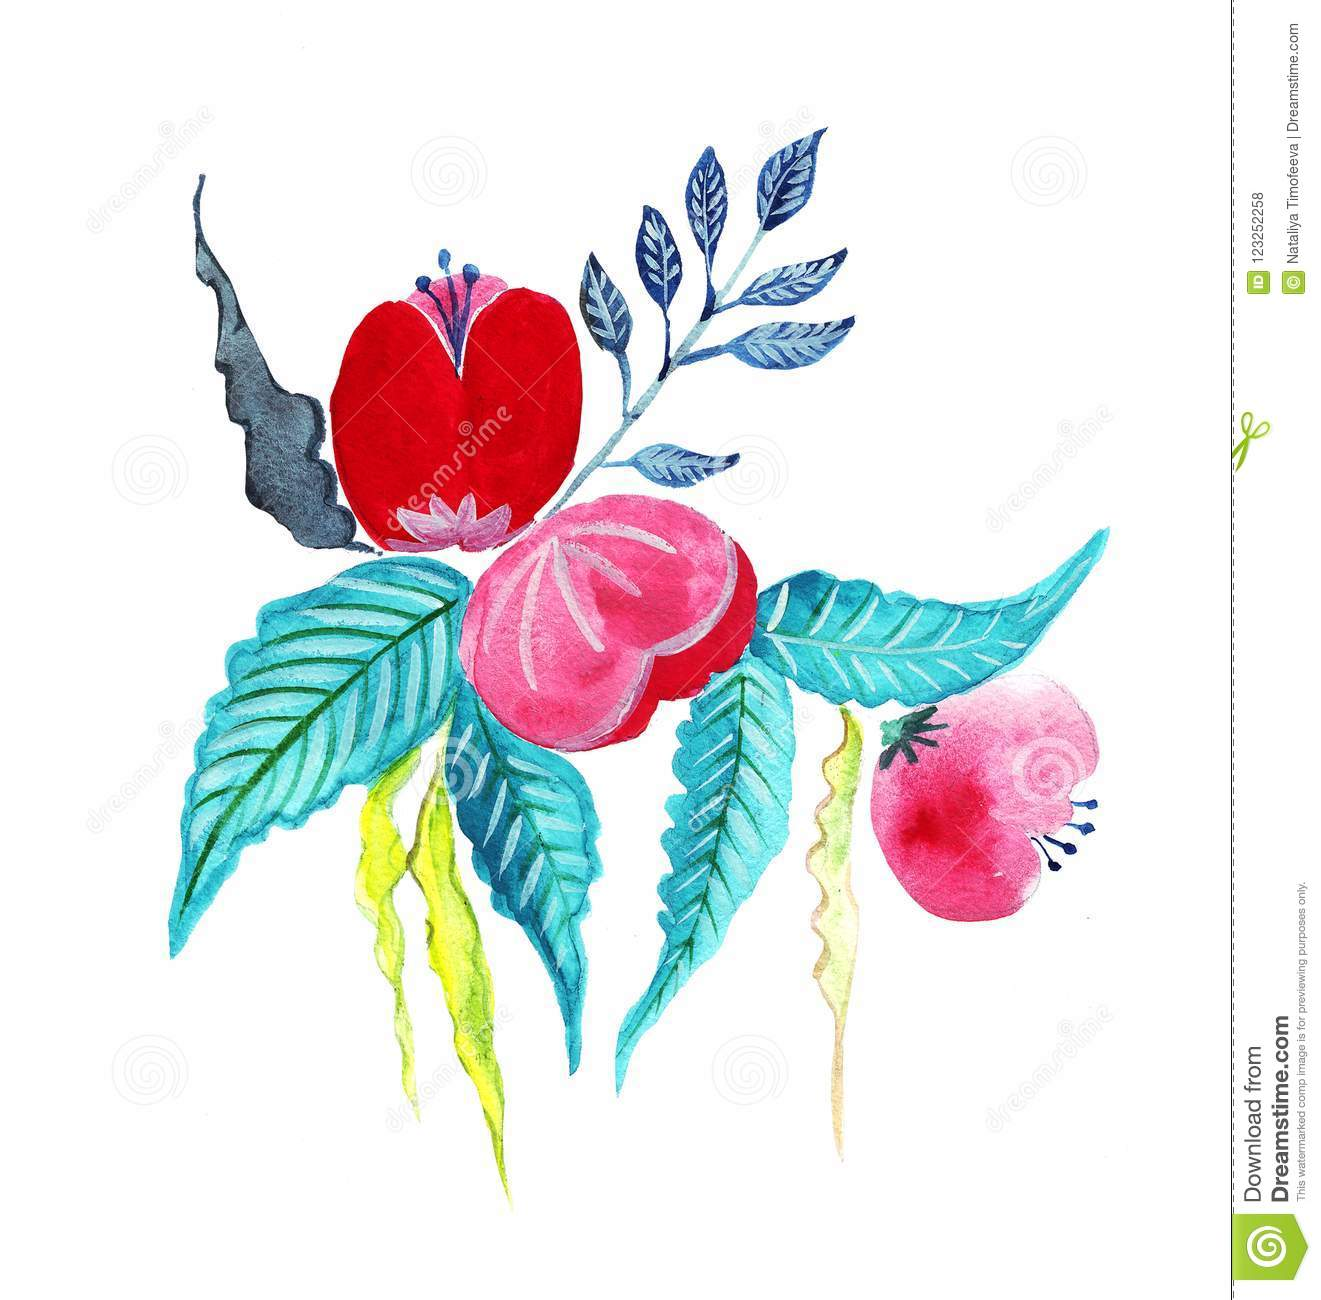 Hand Drawning Watercolor Of A Bouquet Of Flowers Stock Illustration